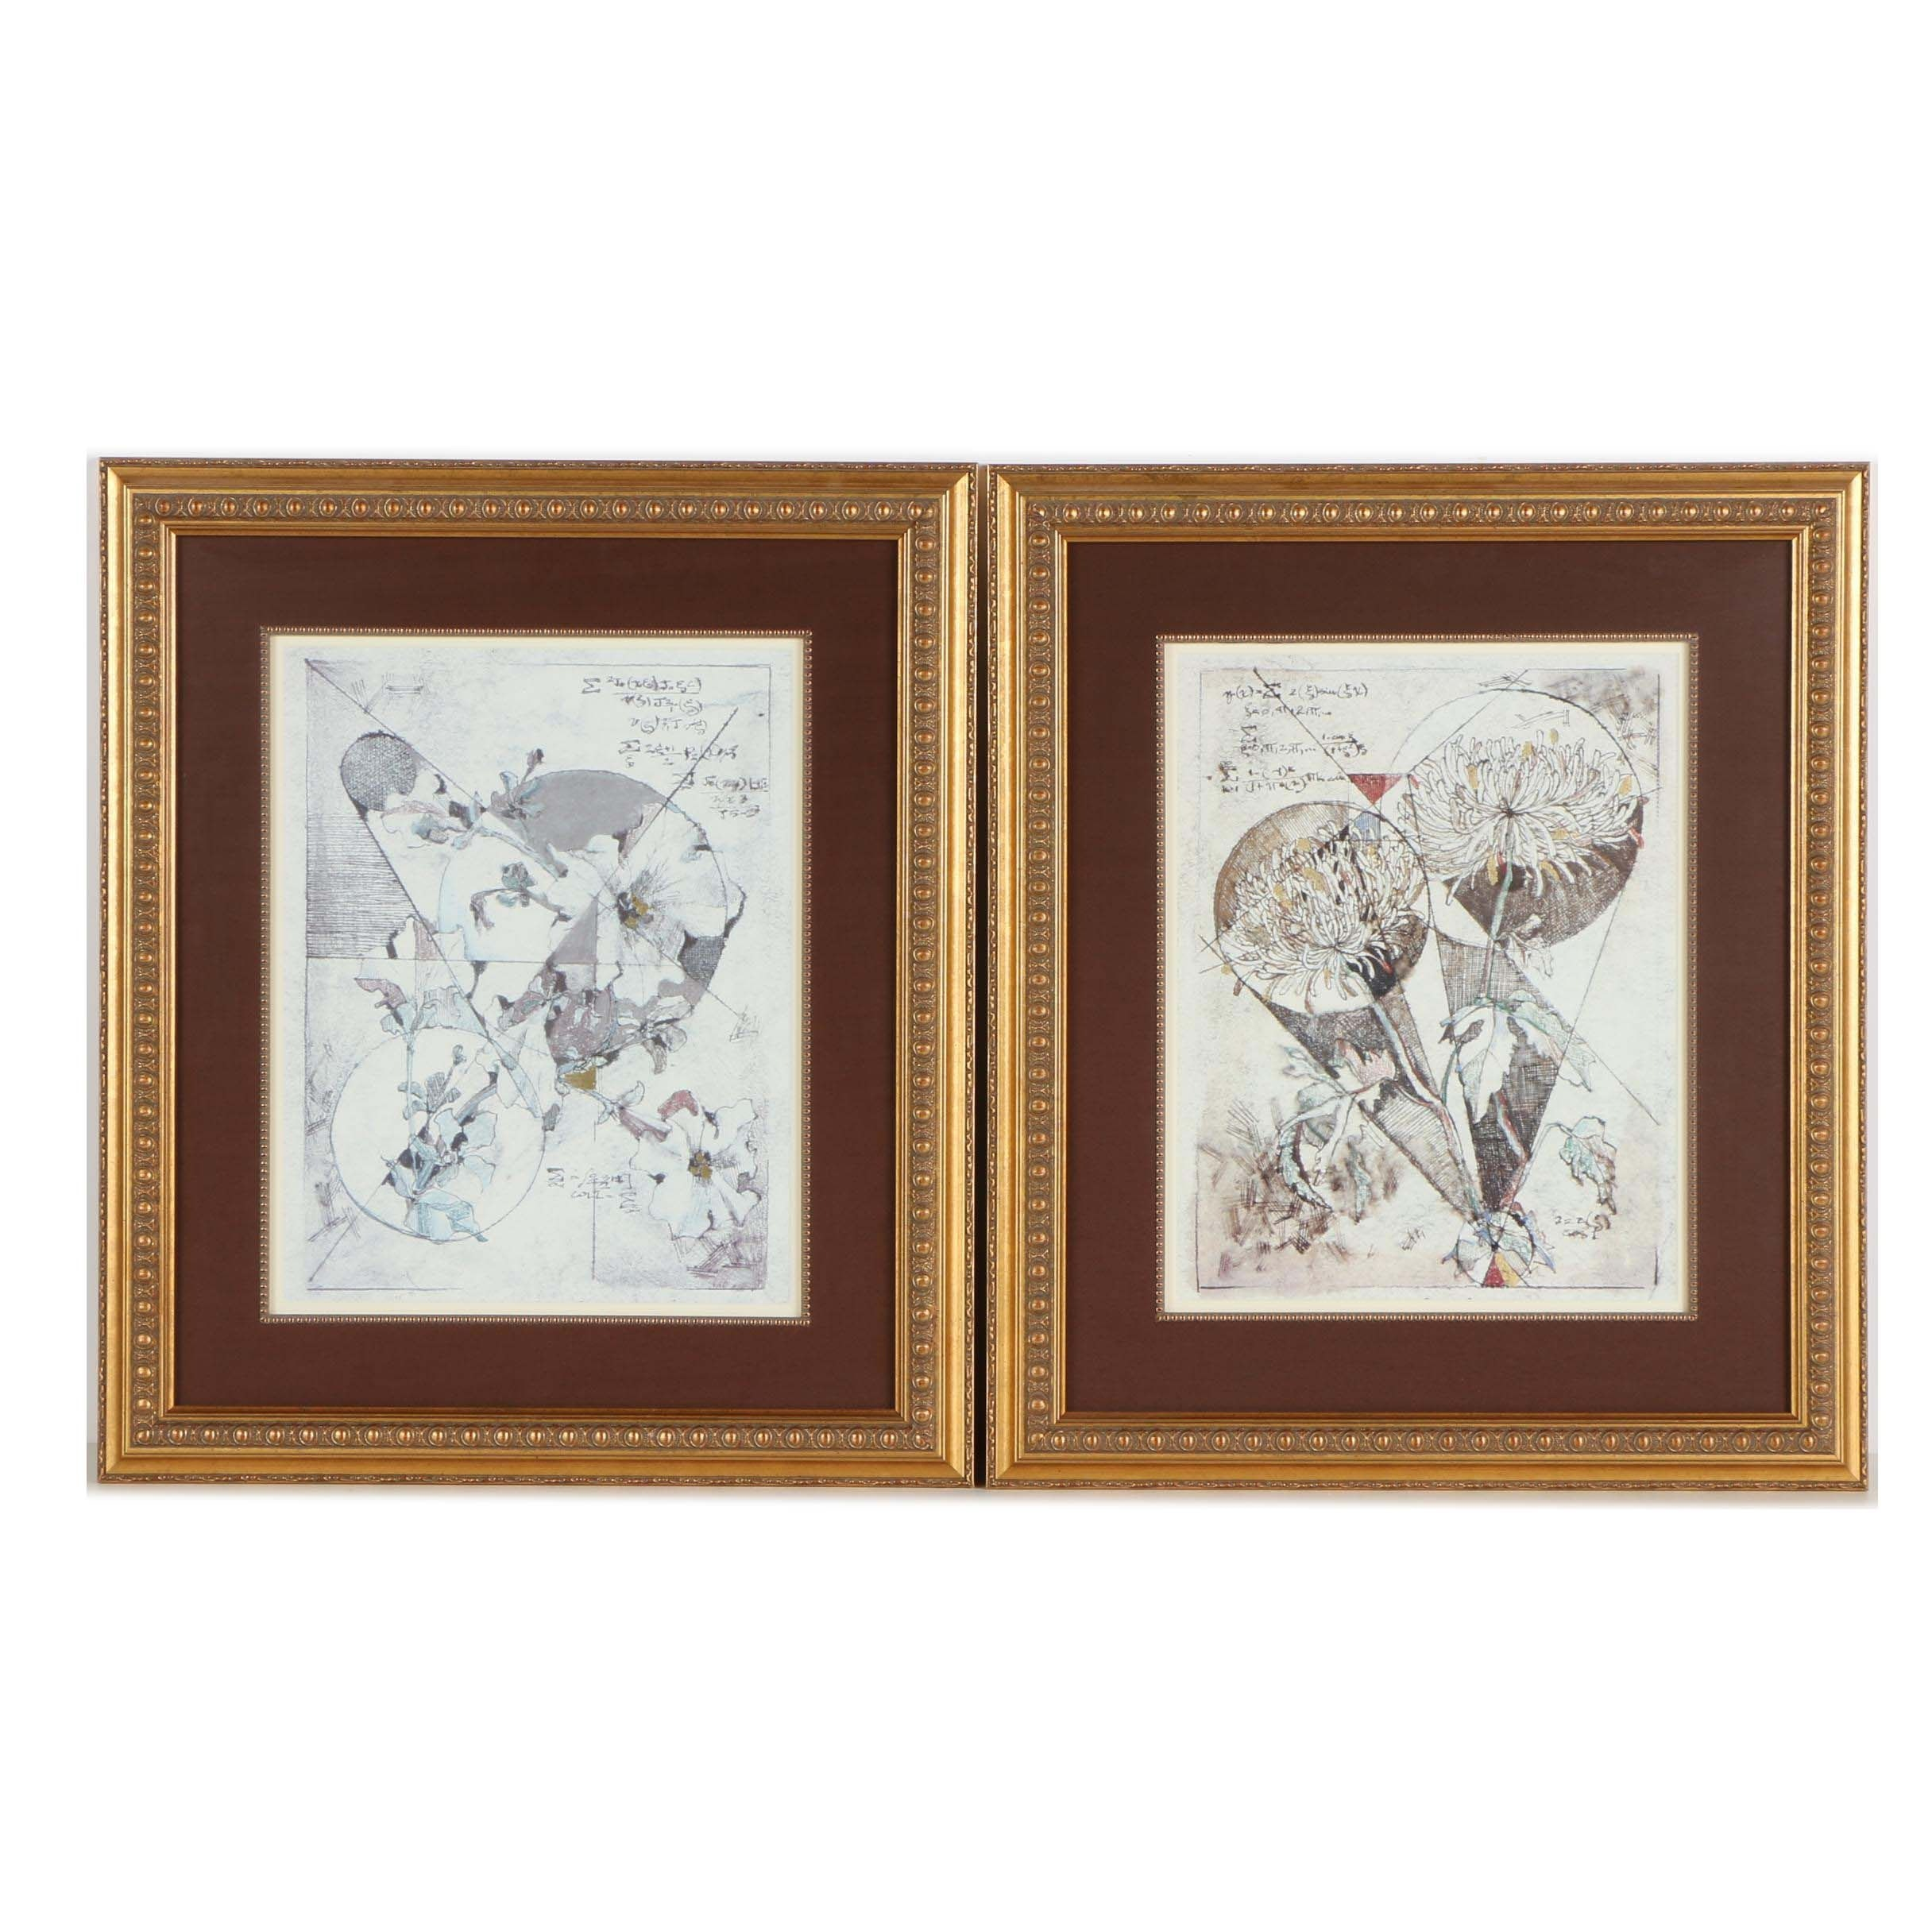 Pair of Offset Lithographs of Flowers